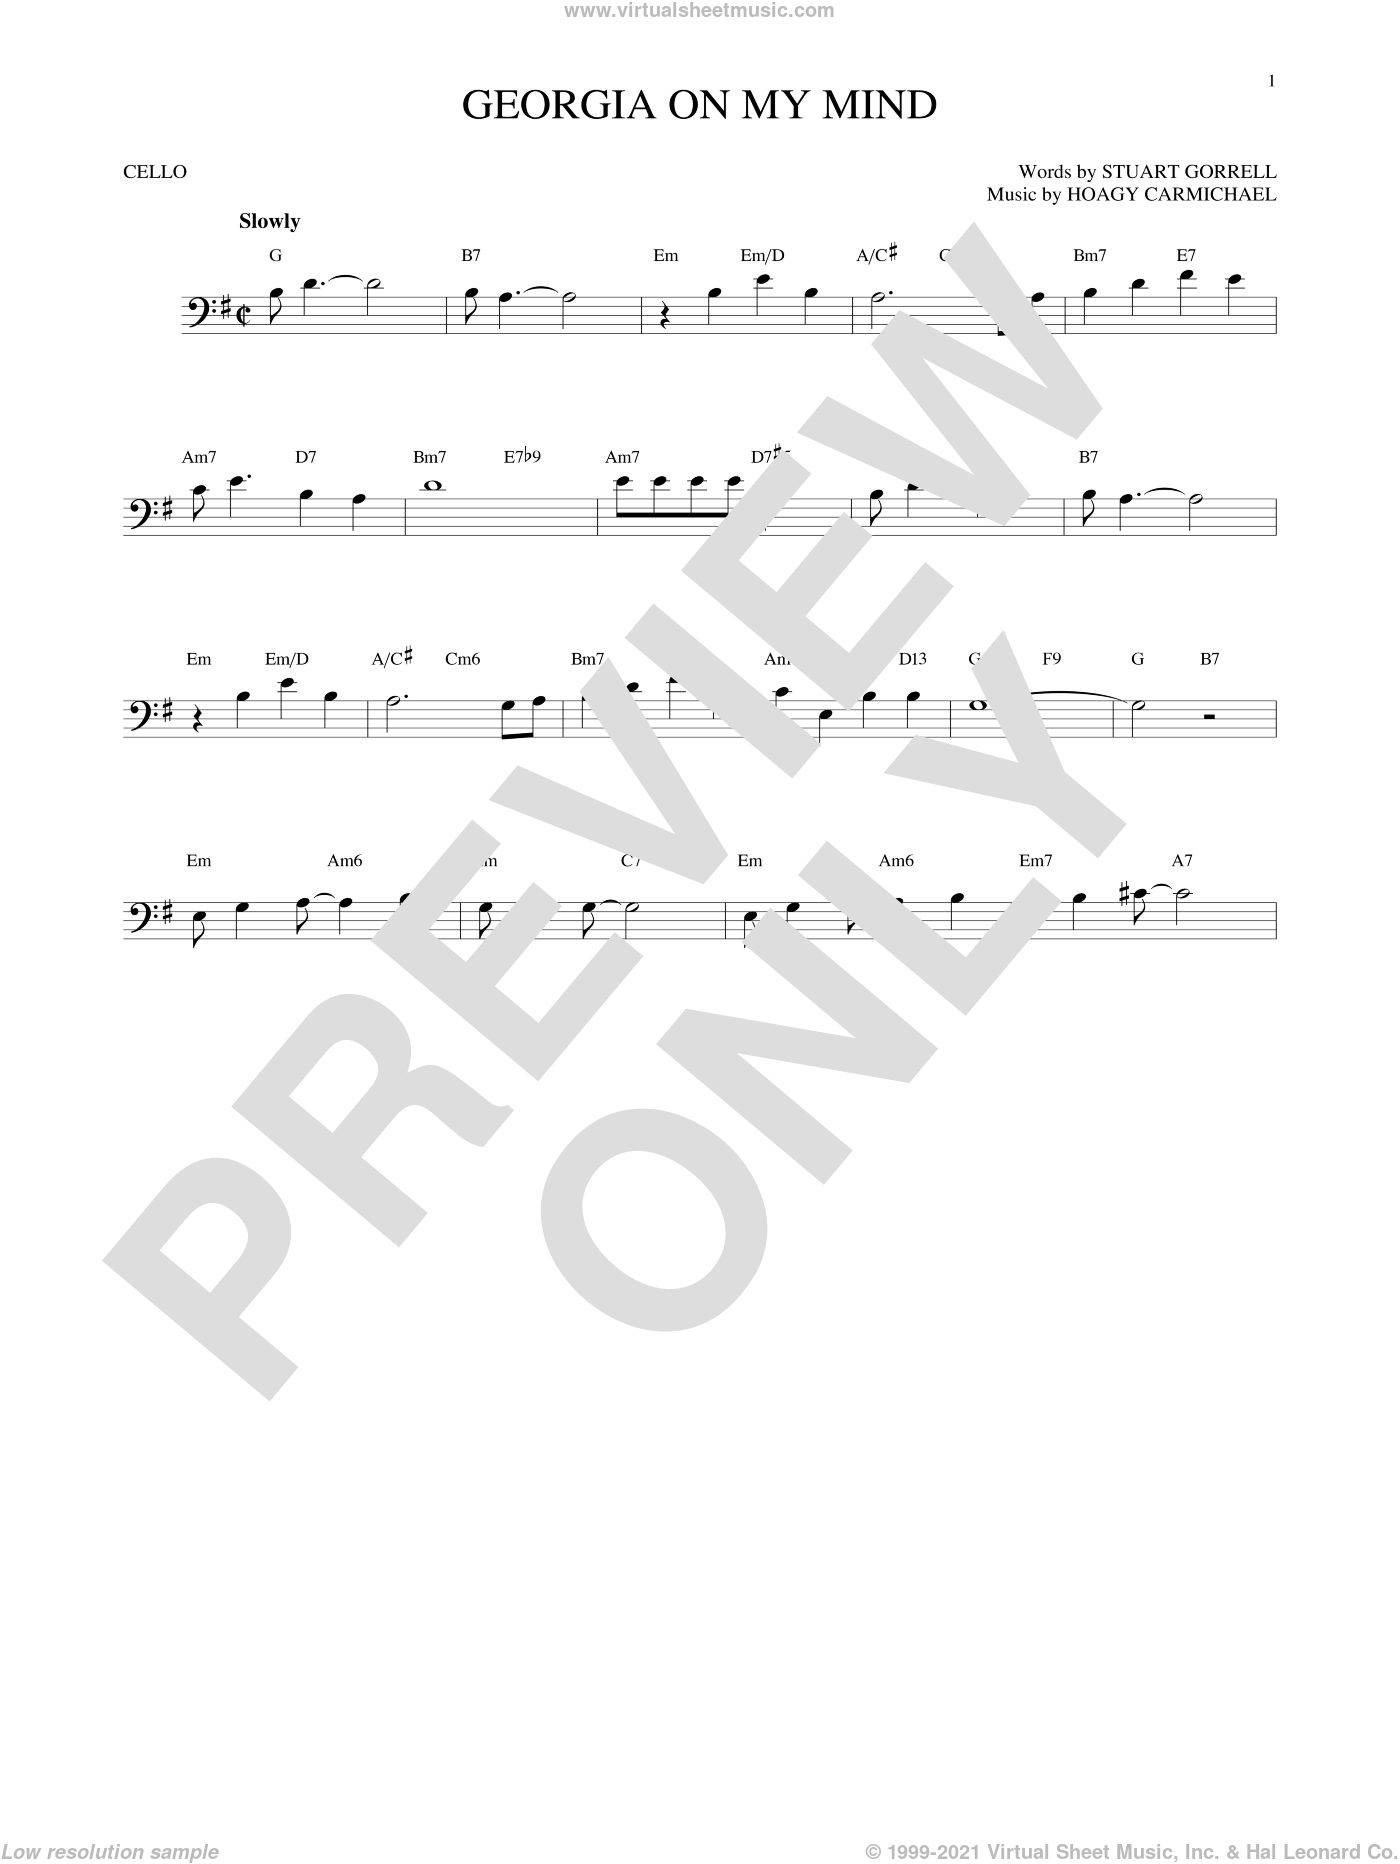 Georgia On My Mind sheet music for cello solo by Hoagy Carmichael, Ray Charles, Willie Nelson and Stuart Gorrell, intermediate skill level